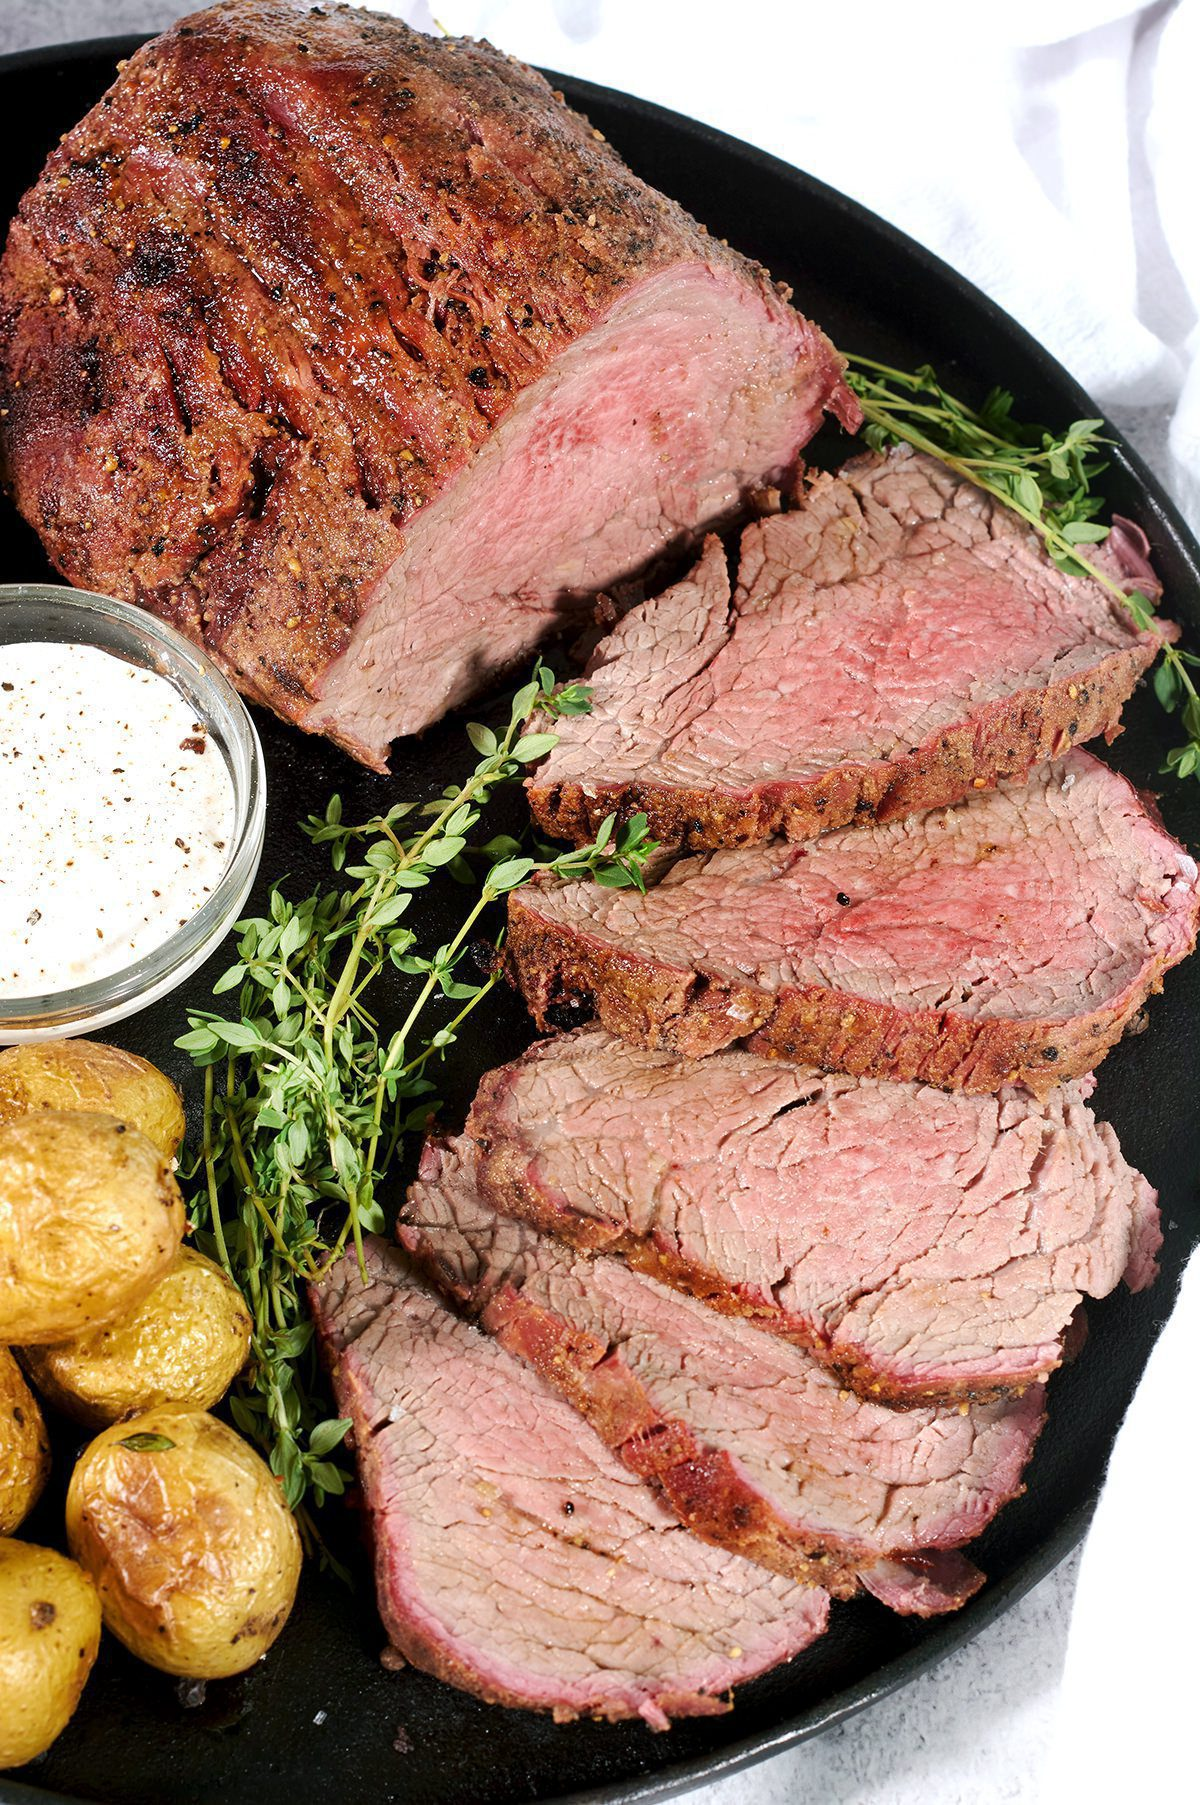 Side view of a smoked beef tenderloin cut into steaks. Accompanied by thyme, potatoes and horseradish sauce.